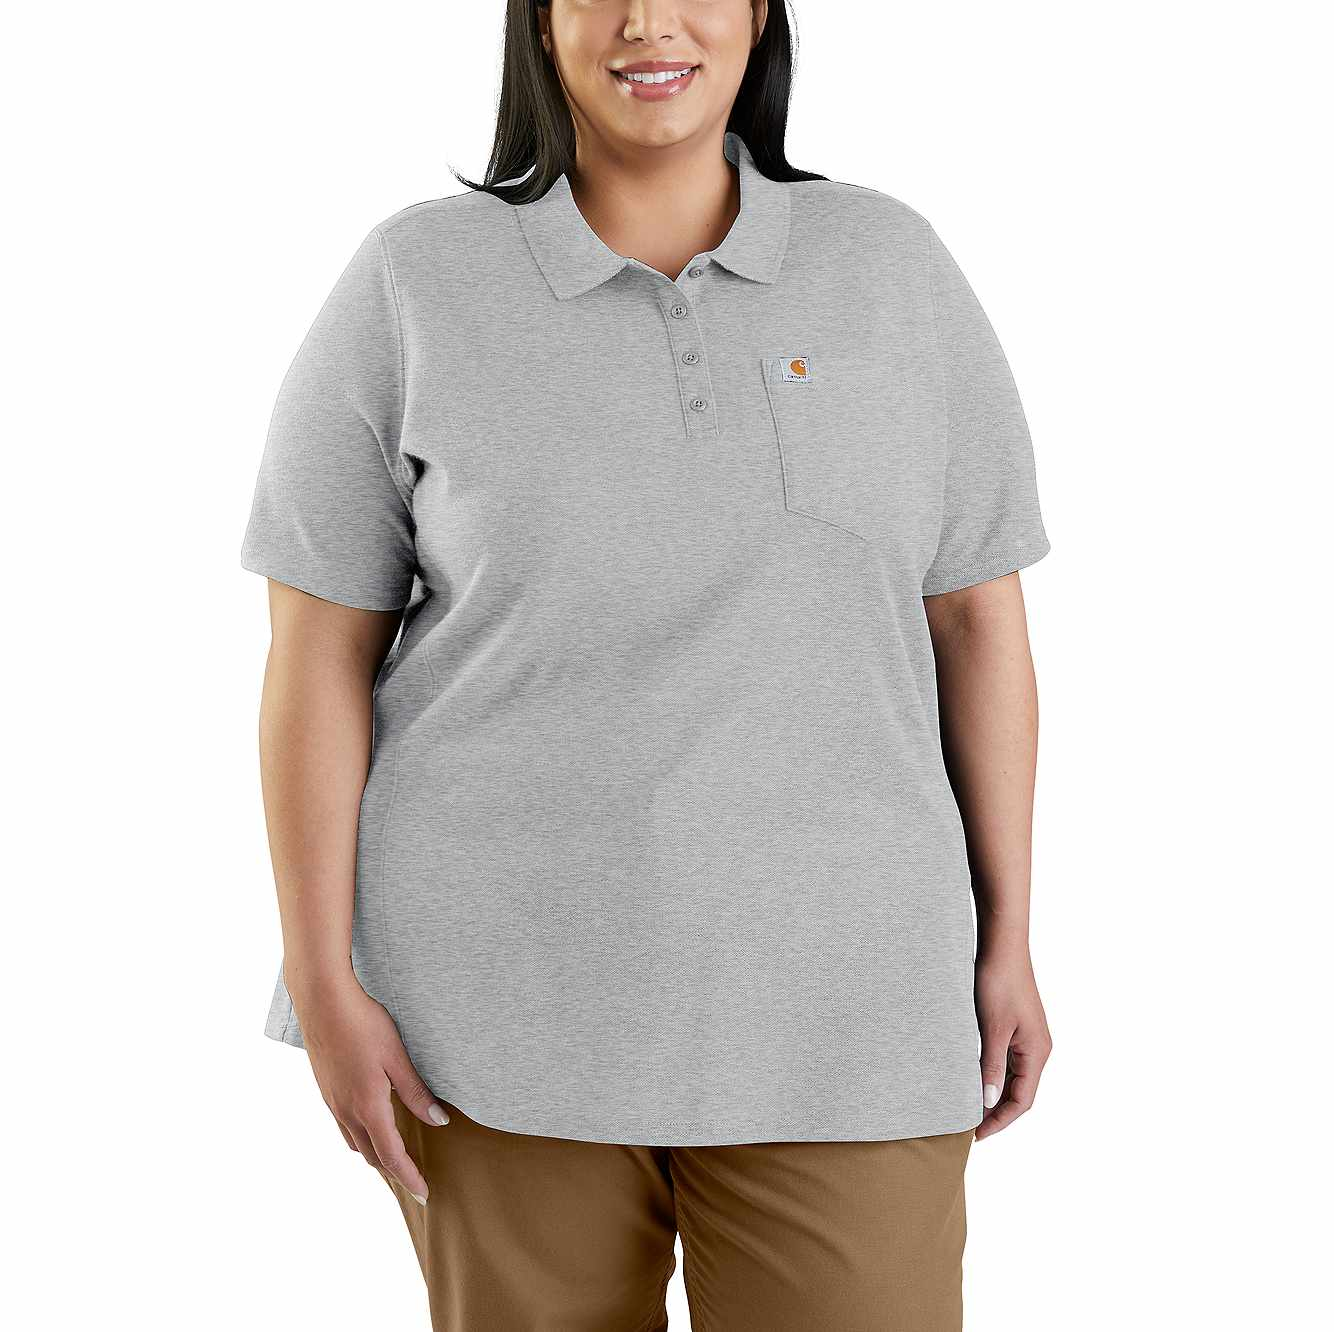 Picture of CONTRACTOR'S WORK POCKET® POLO in Heather Gray